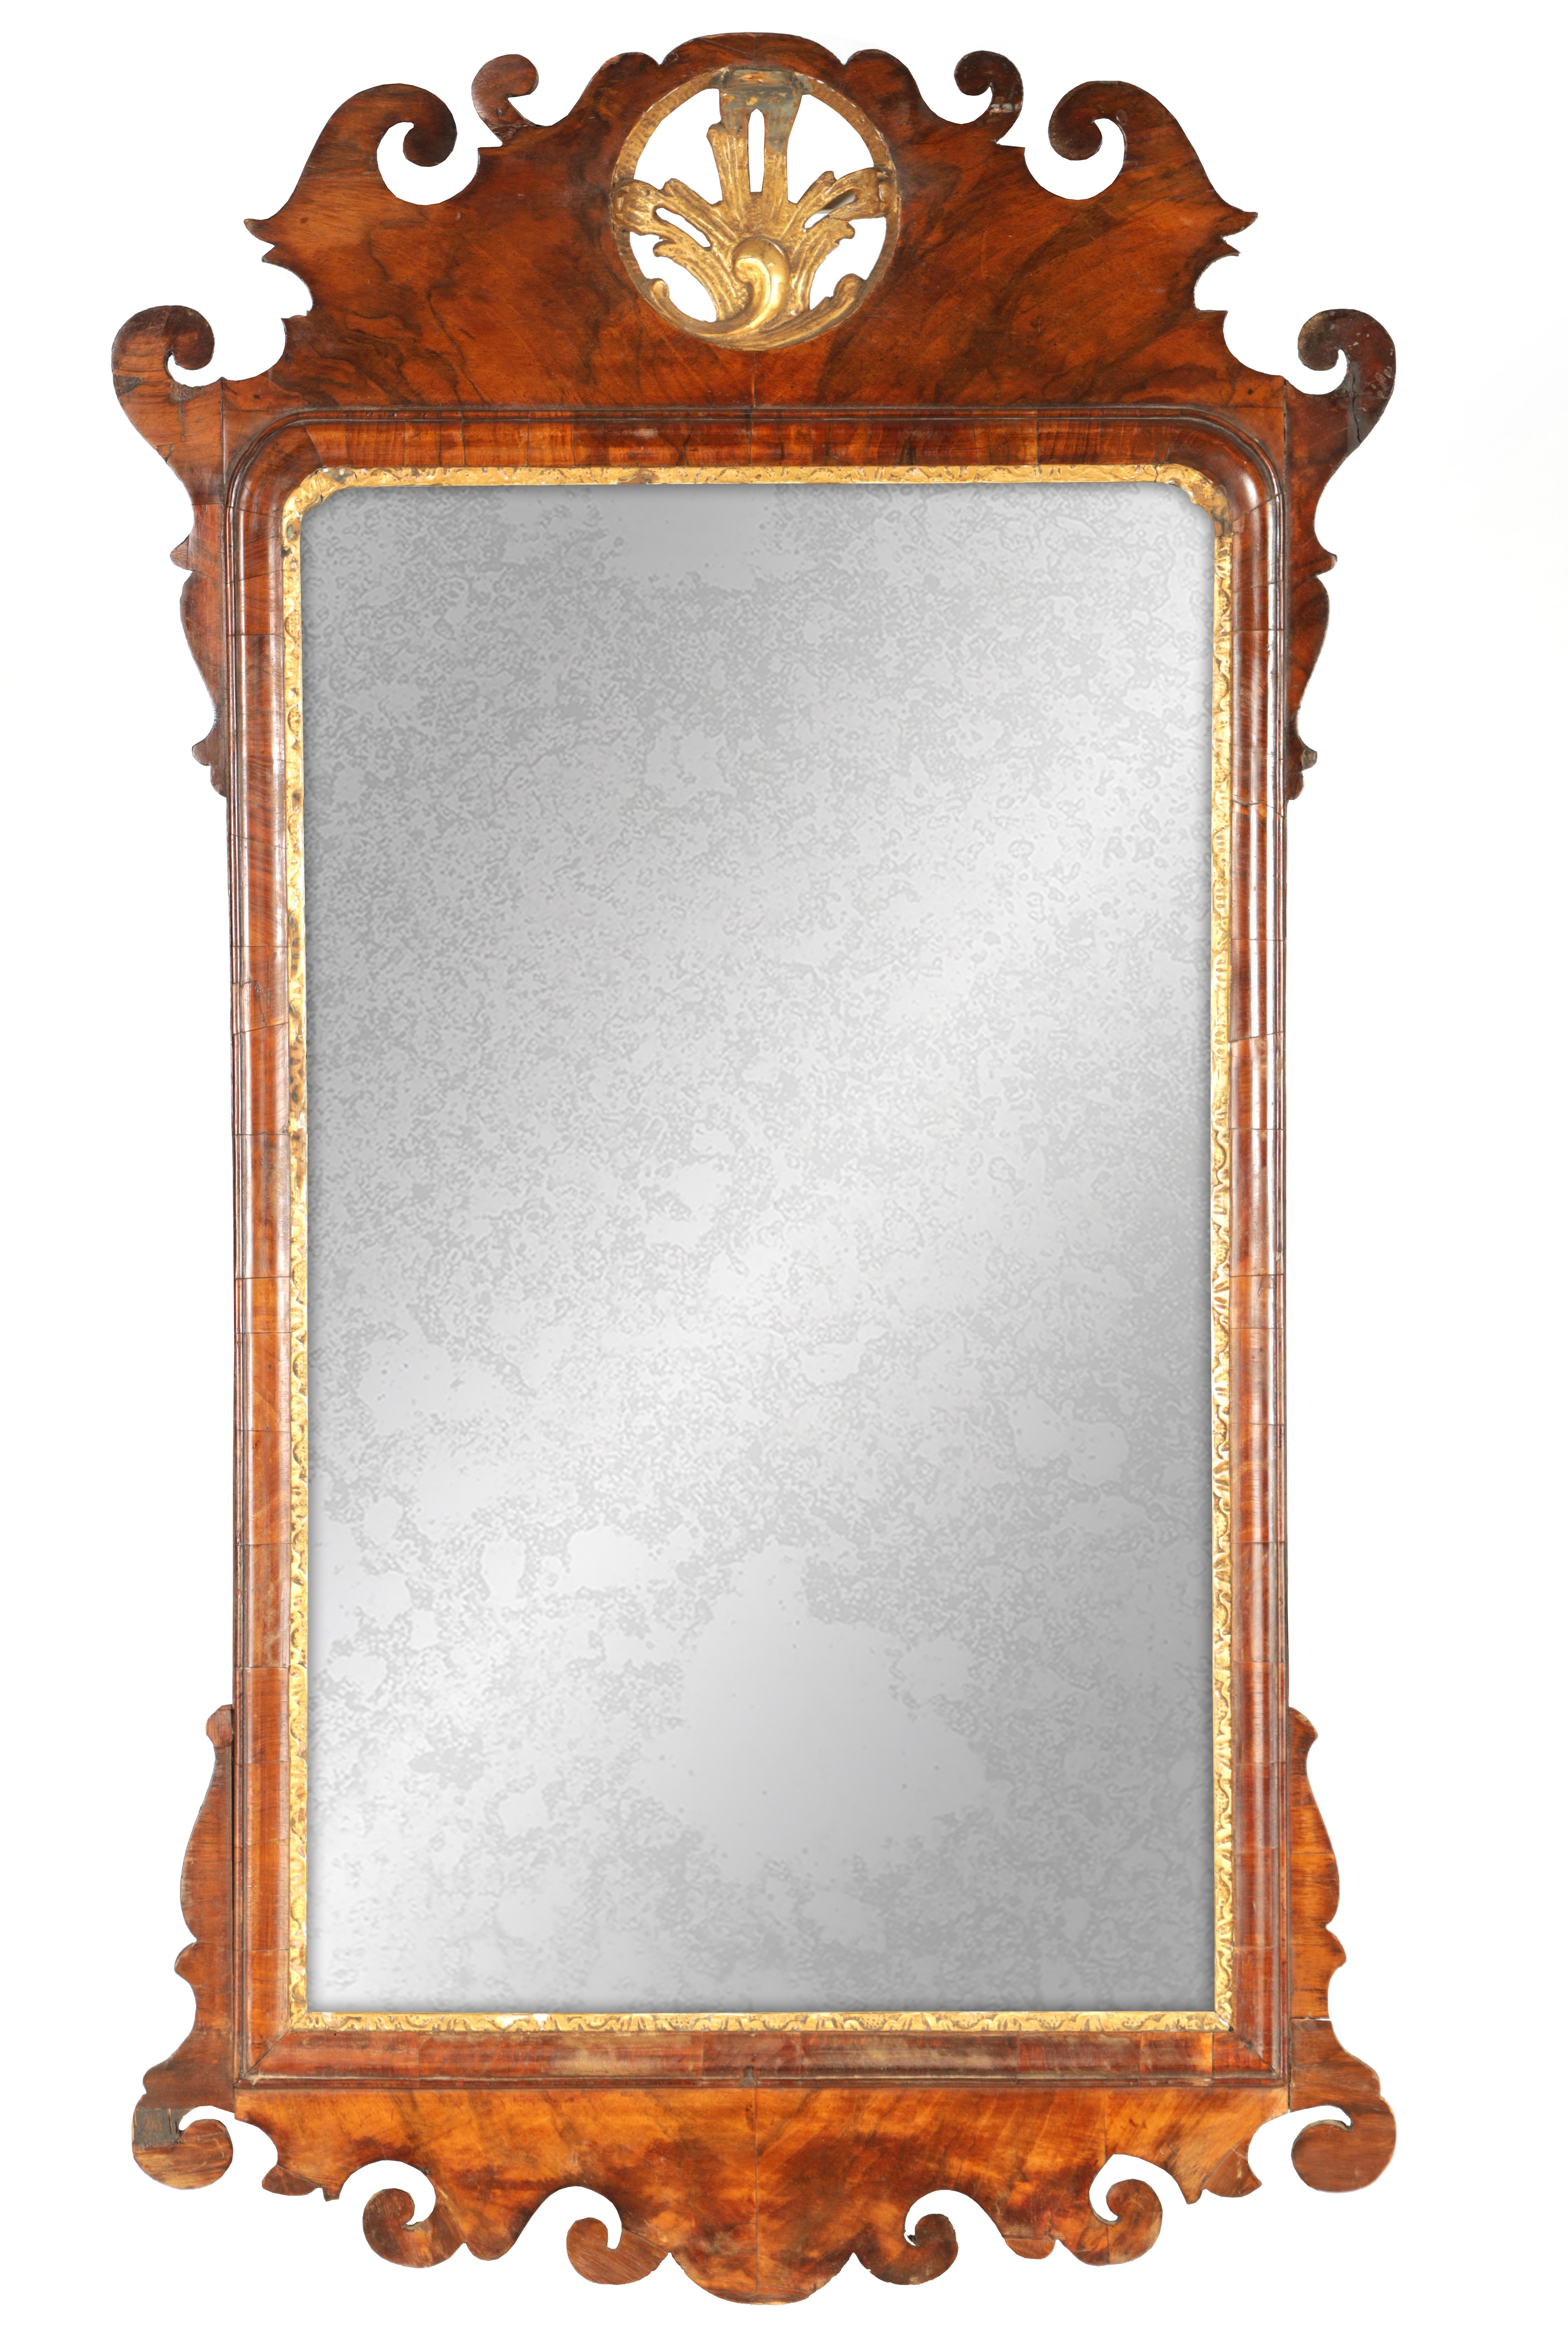 AN 18TH CENTURY WALNUT PIER MIRROR with shaped scrolled frame and gilt carved rococo pediment, the